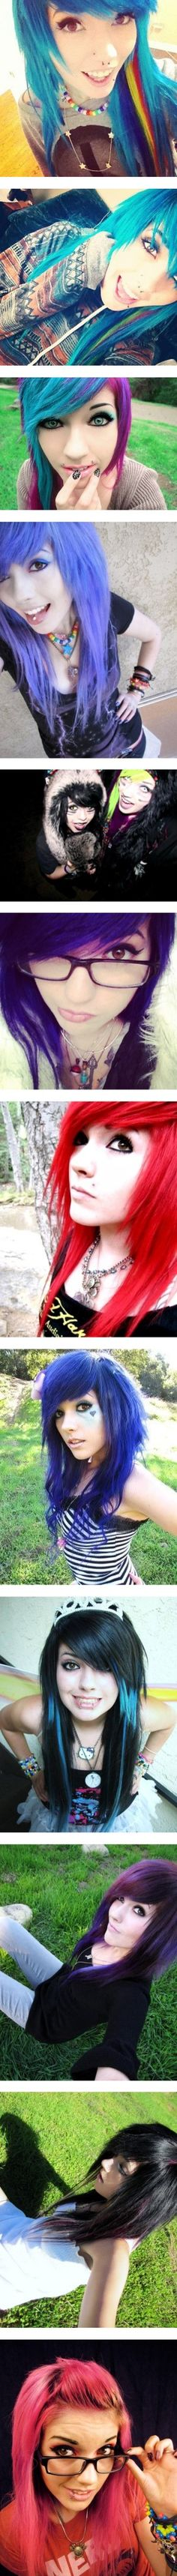 """""""LEDA HAIR"""" by punk-127 ❤ liked on Polyvore"""